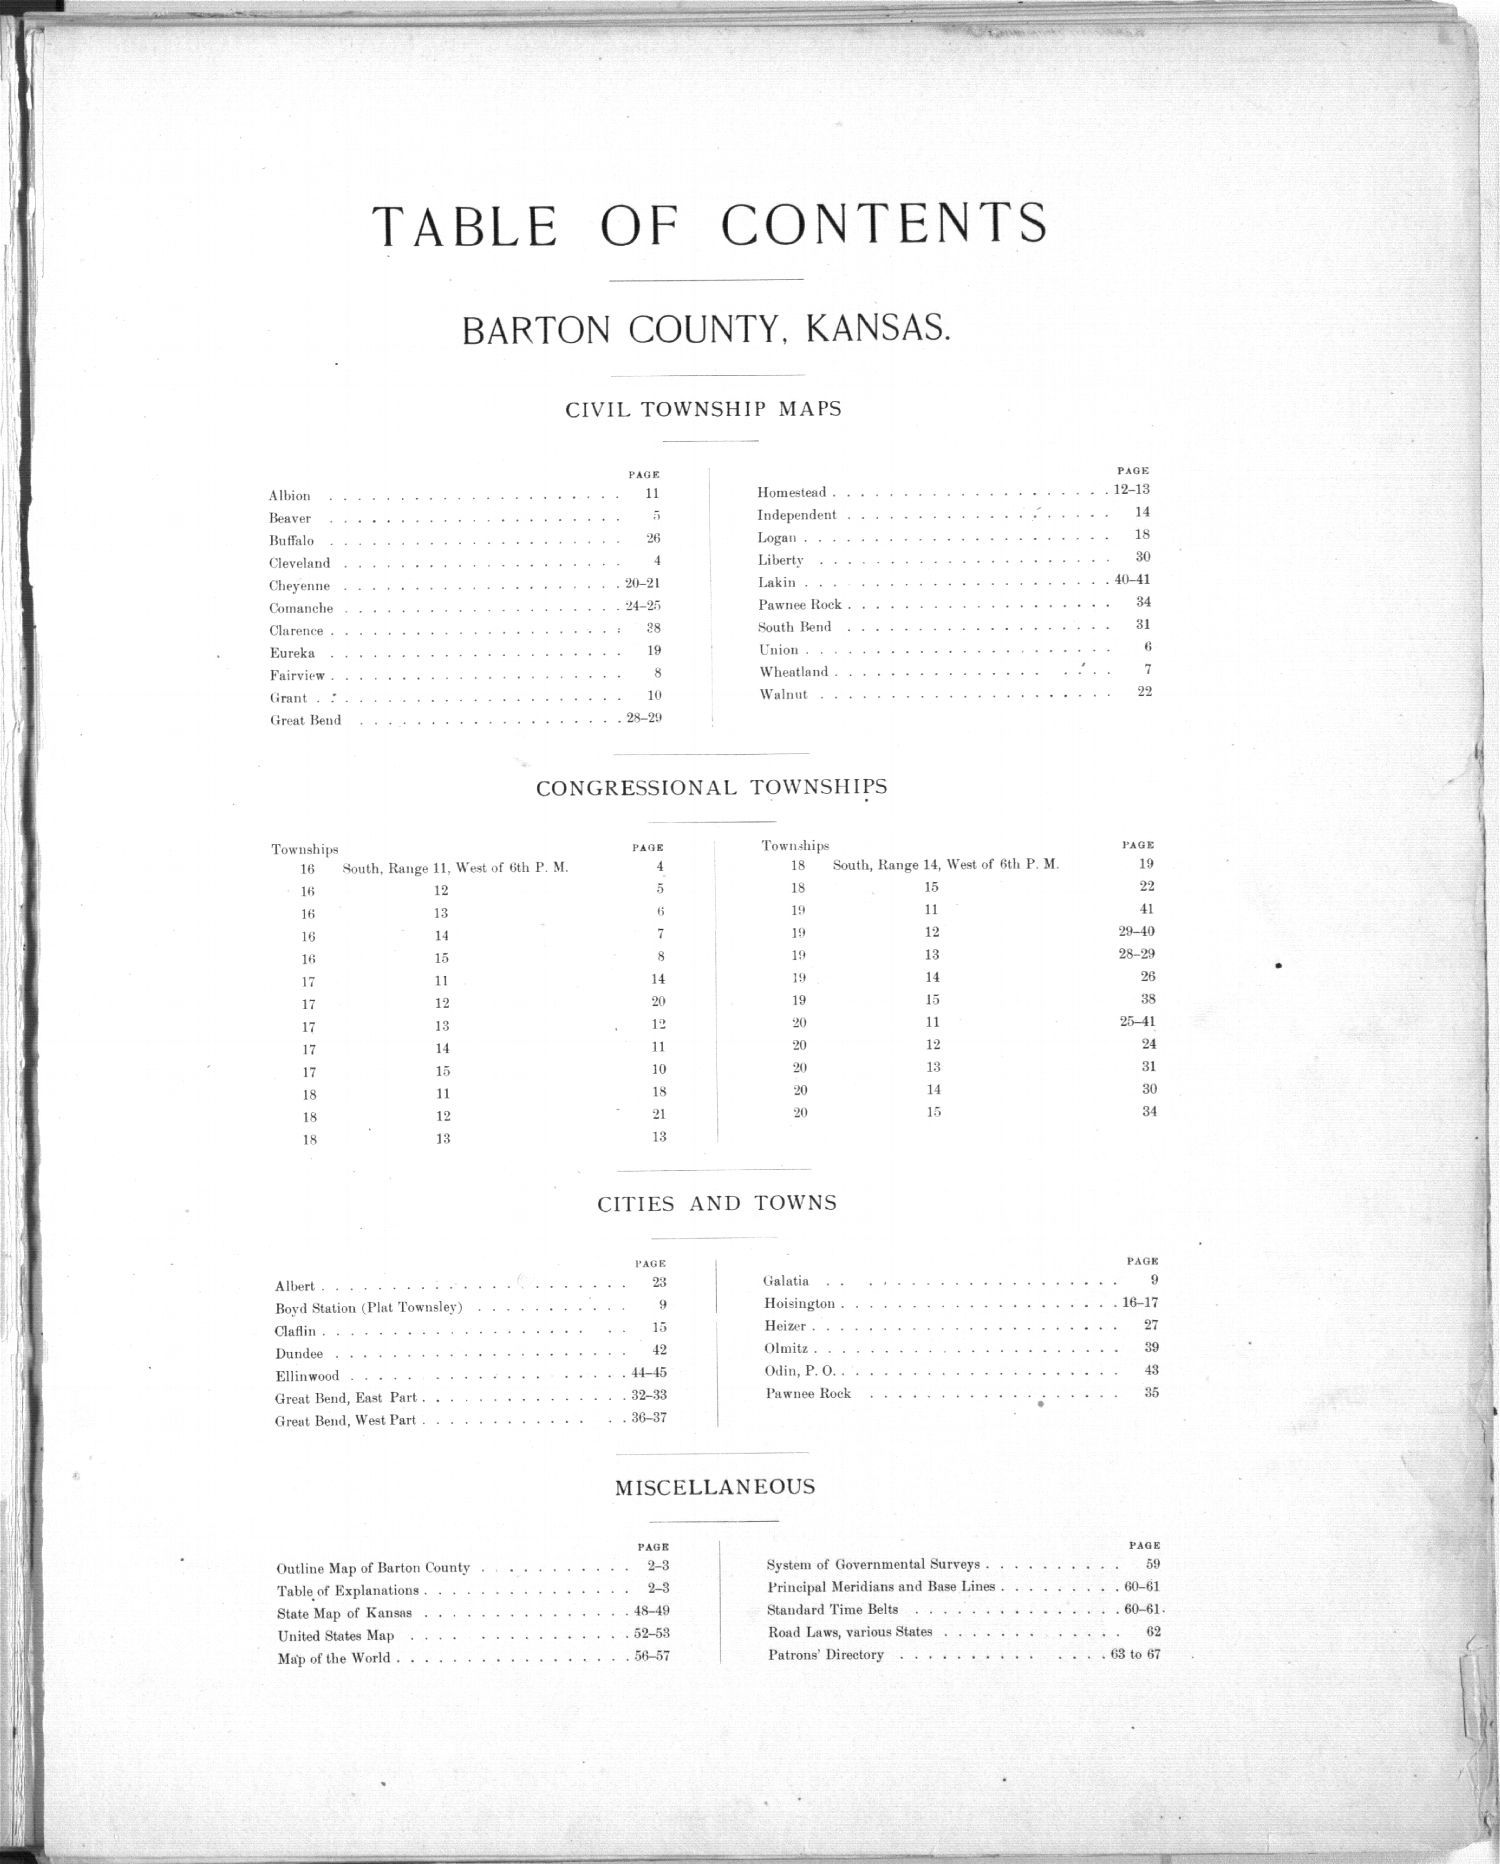 Plat book, Barton County, Kansas - Table of Contents